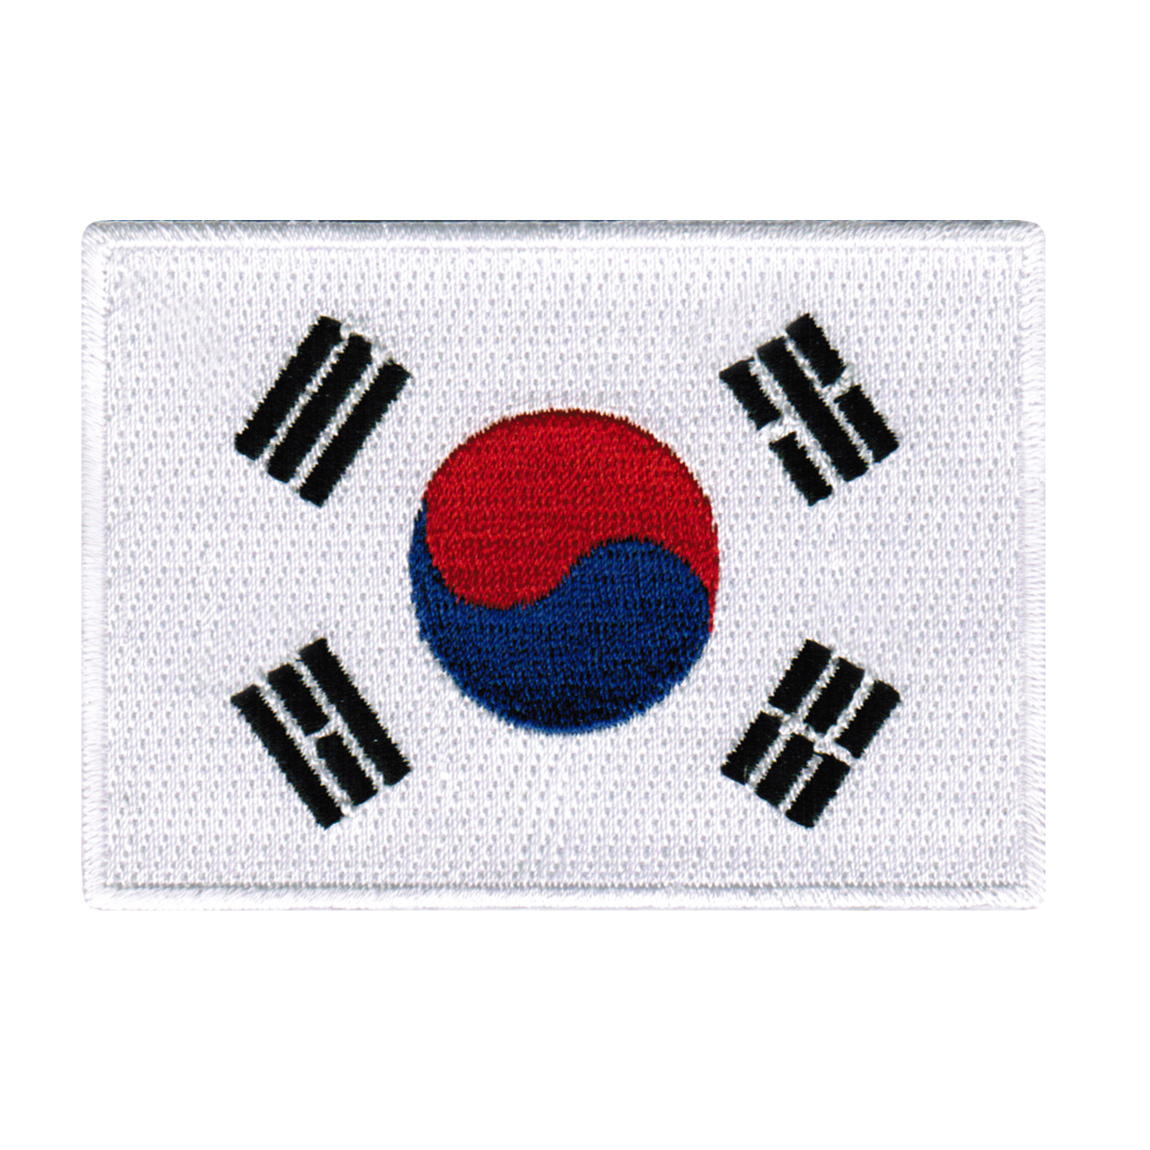 South Korea Flag Embroidered Iron-on Patch